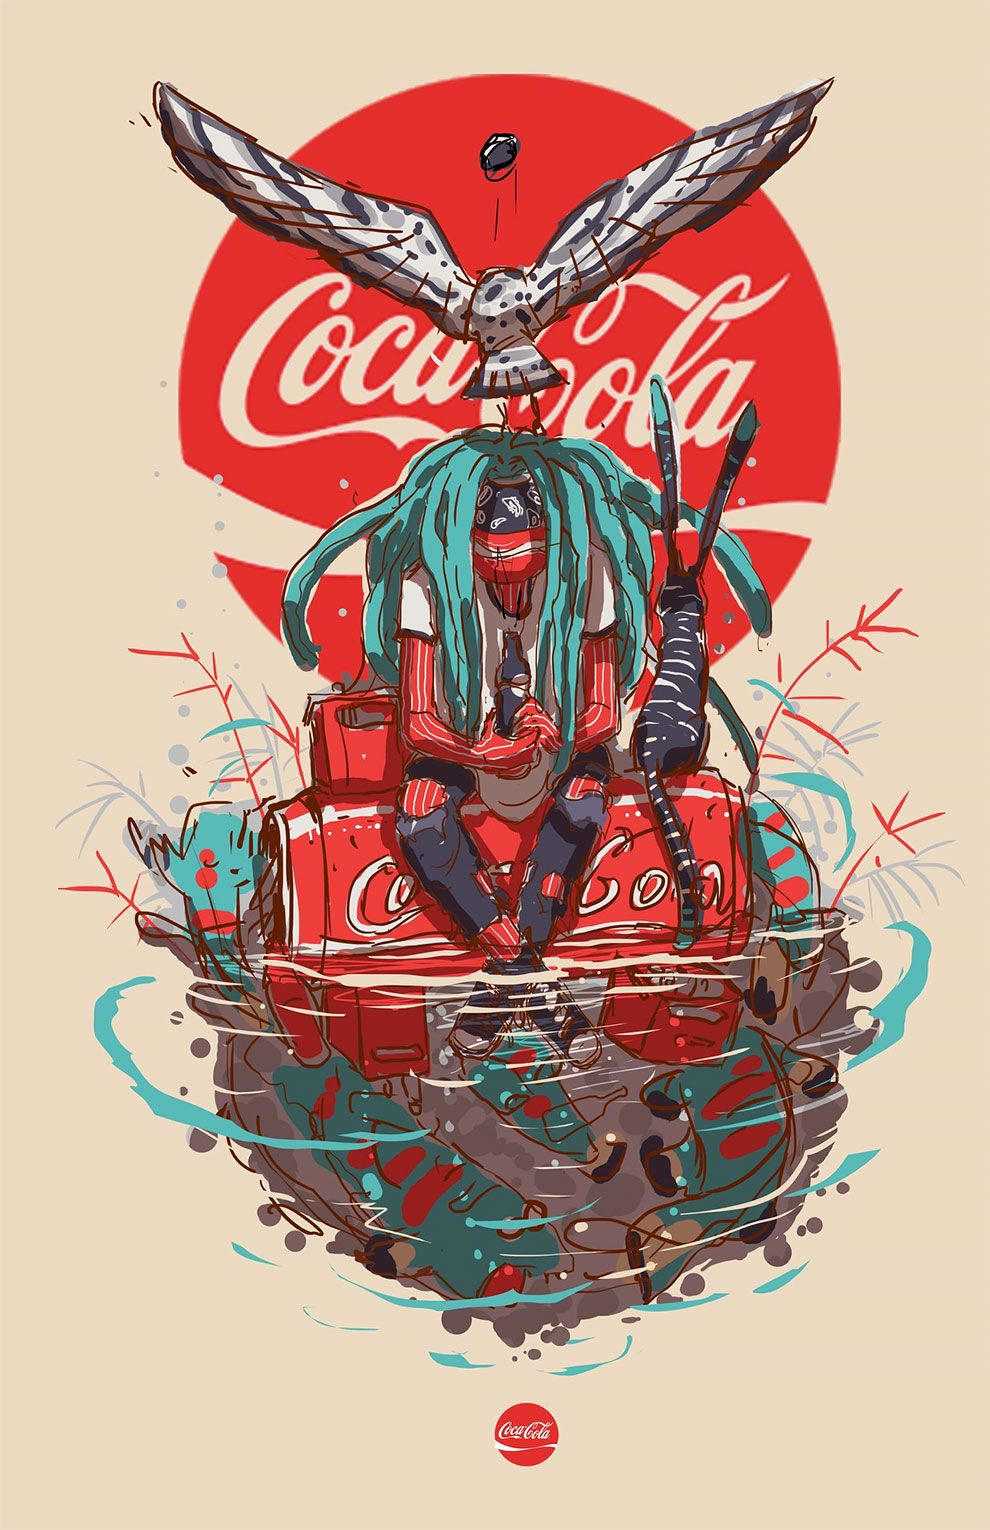 Artist Esoj Luna Illustrated Iconic Brands As If They Were Humans